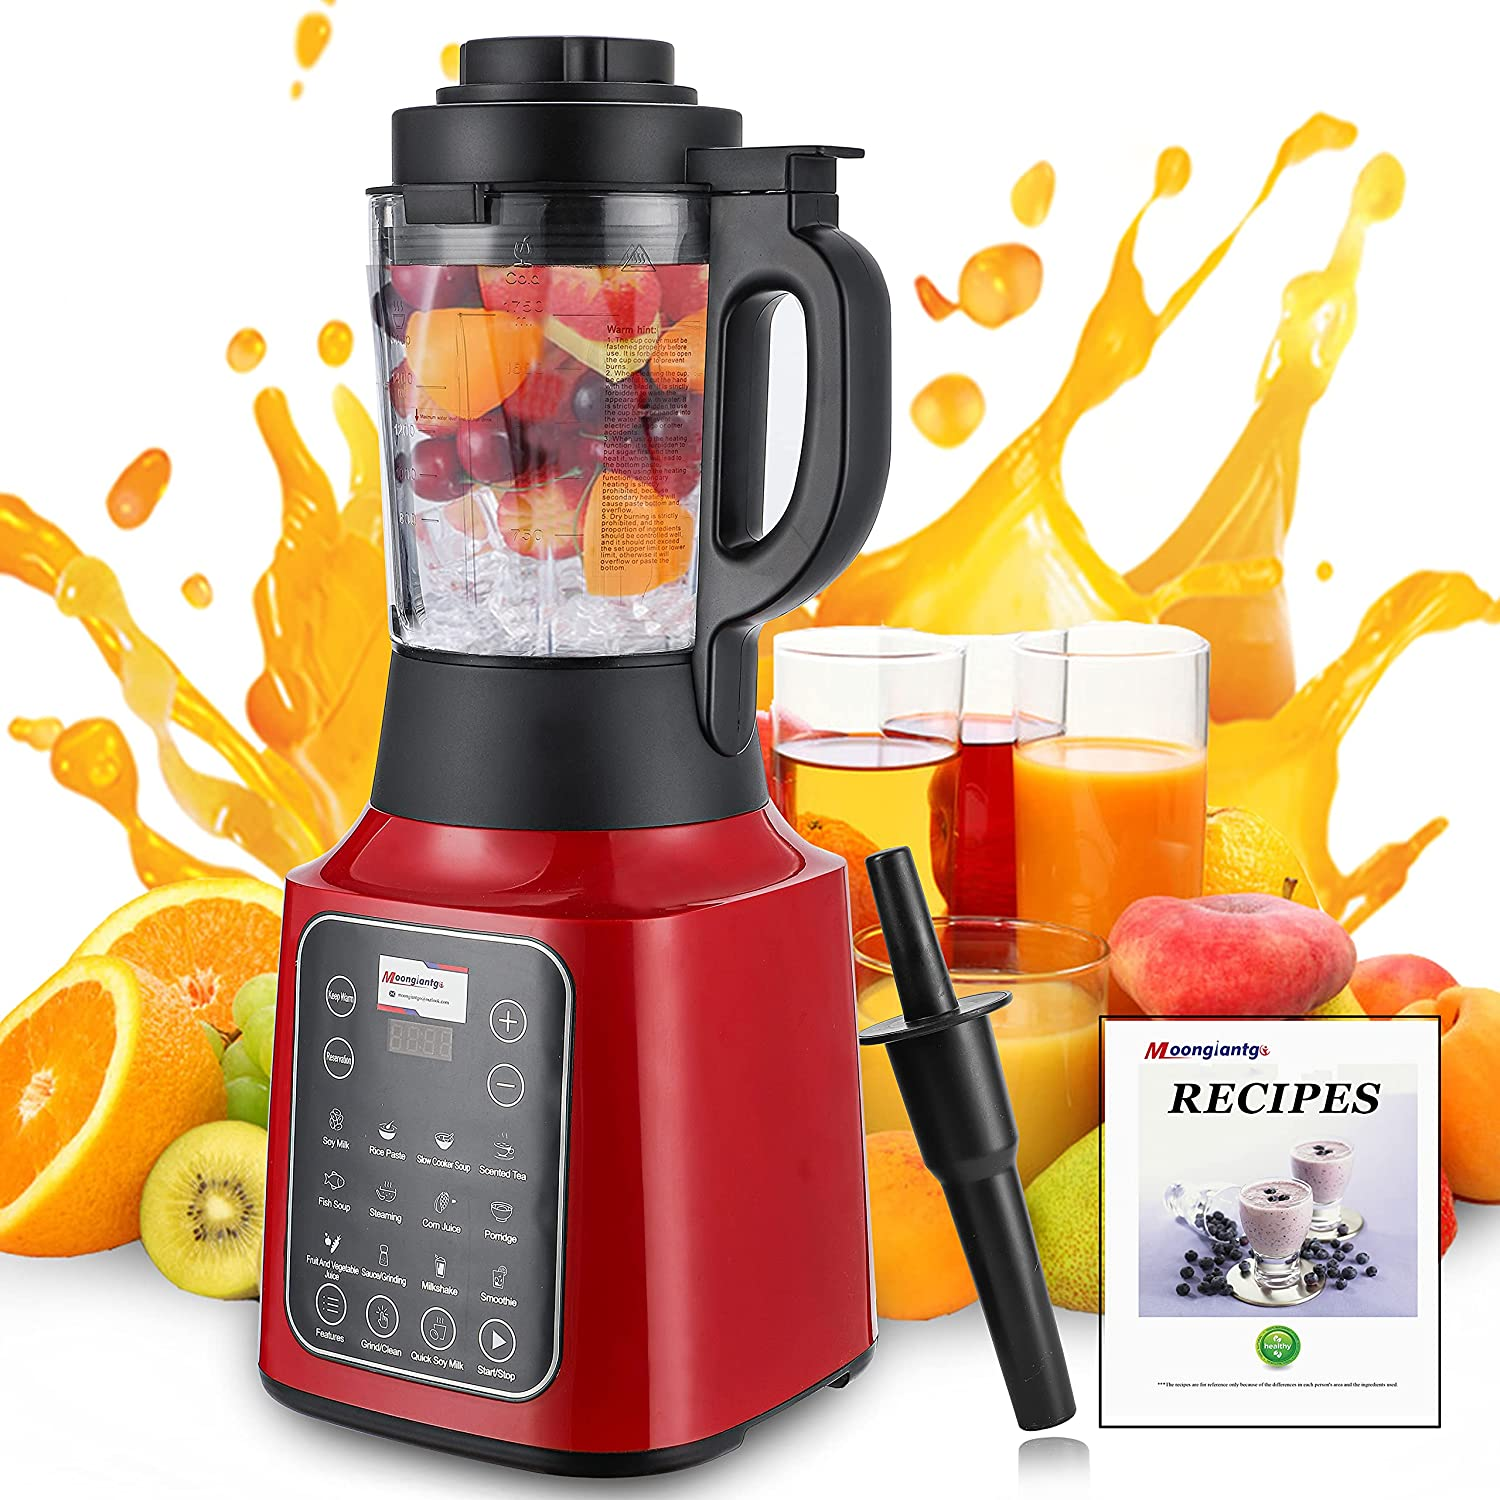 Professional Blender for Smoothies and Shakes Countertop Kitchen Blender with 13 Preset Touch 59 Oz Glass Jar Touch Panel Quiet High Speed Motor for Ice Fruit Juice Soup Nut Butter Red 110V